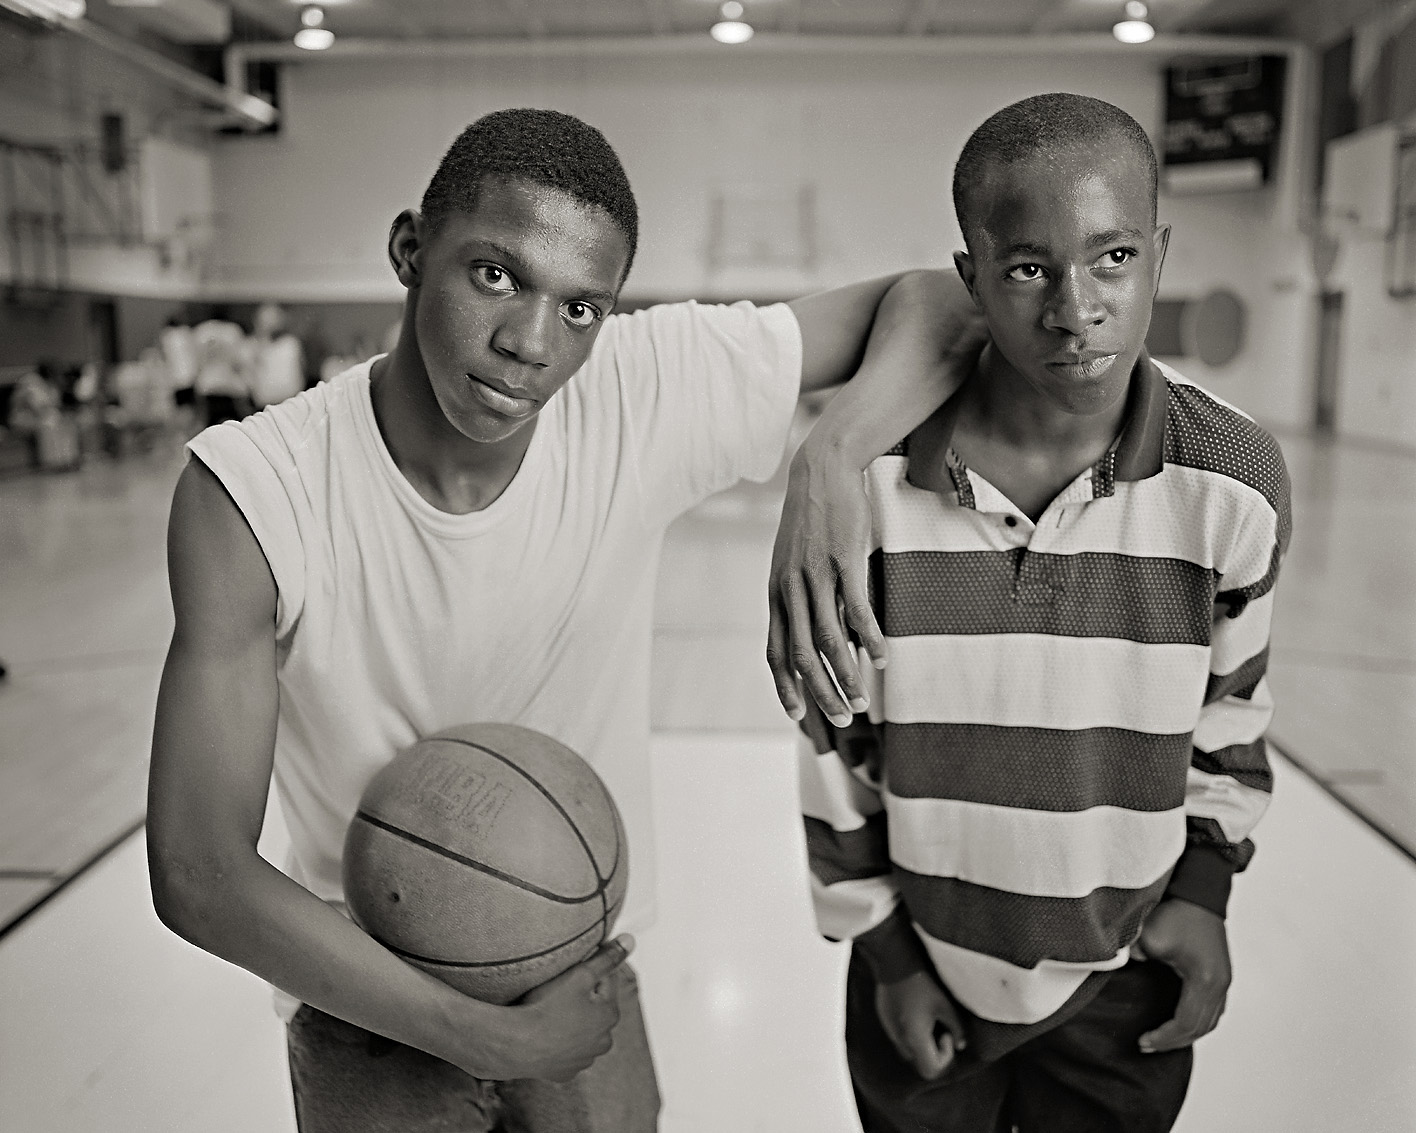 Basketball players black and white portrait in a gym.